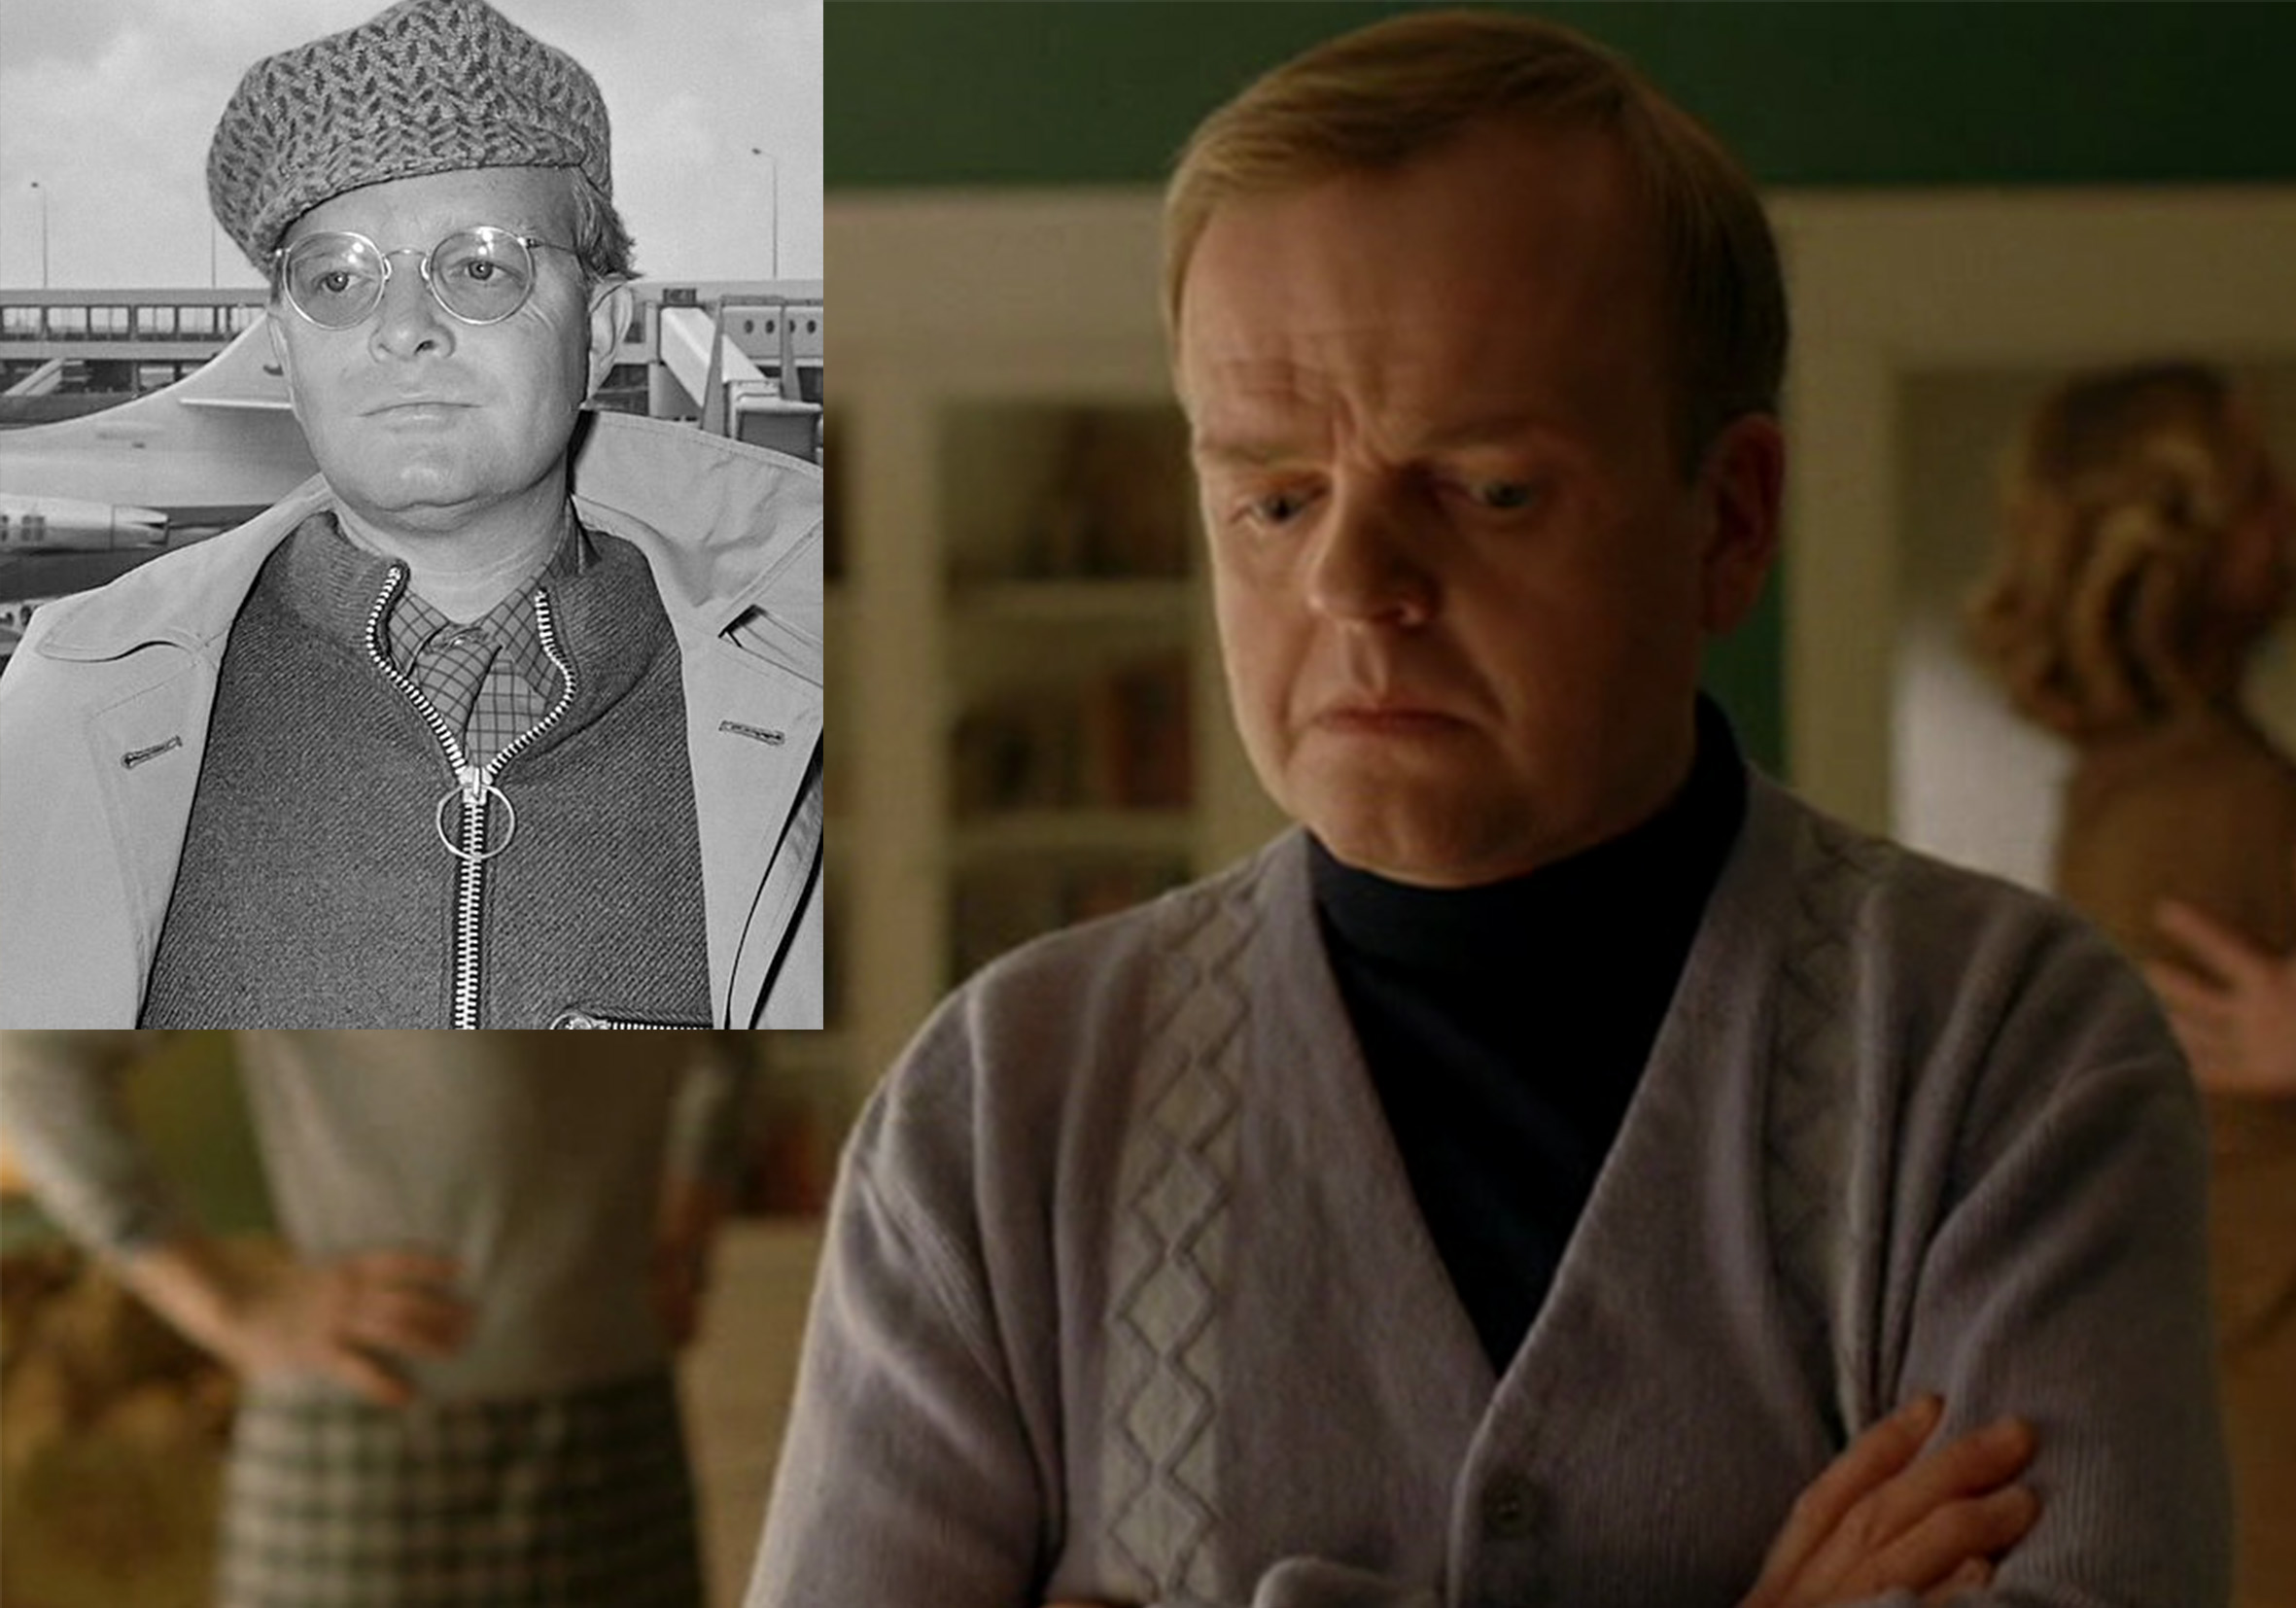 toby jones truman capote infamous 20 Actors Who Looked Exactly Like The Real People They Played